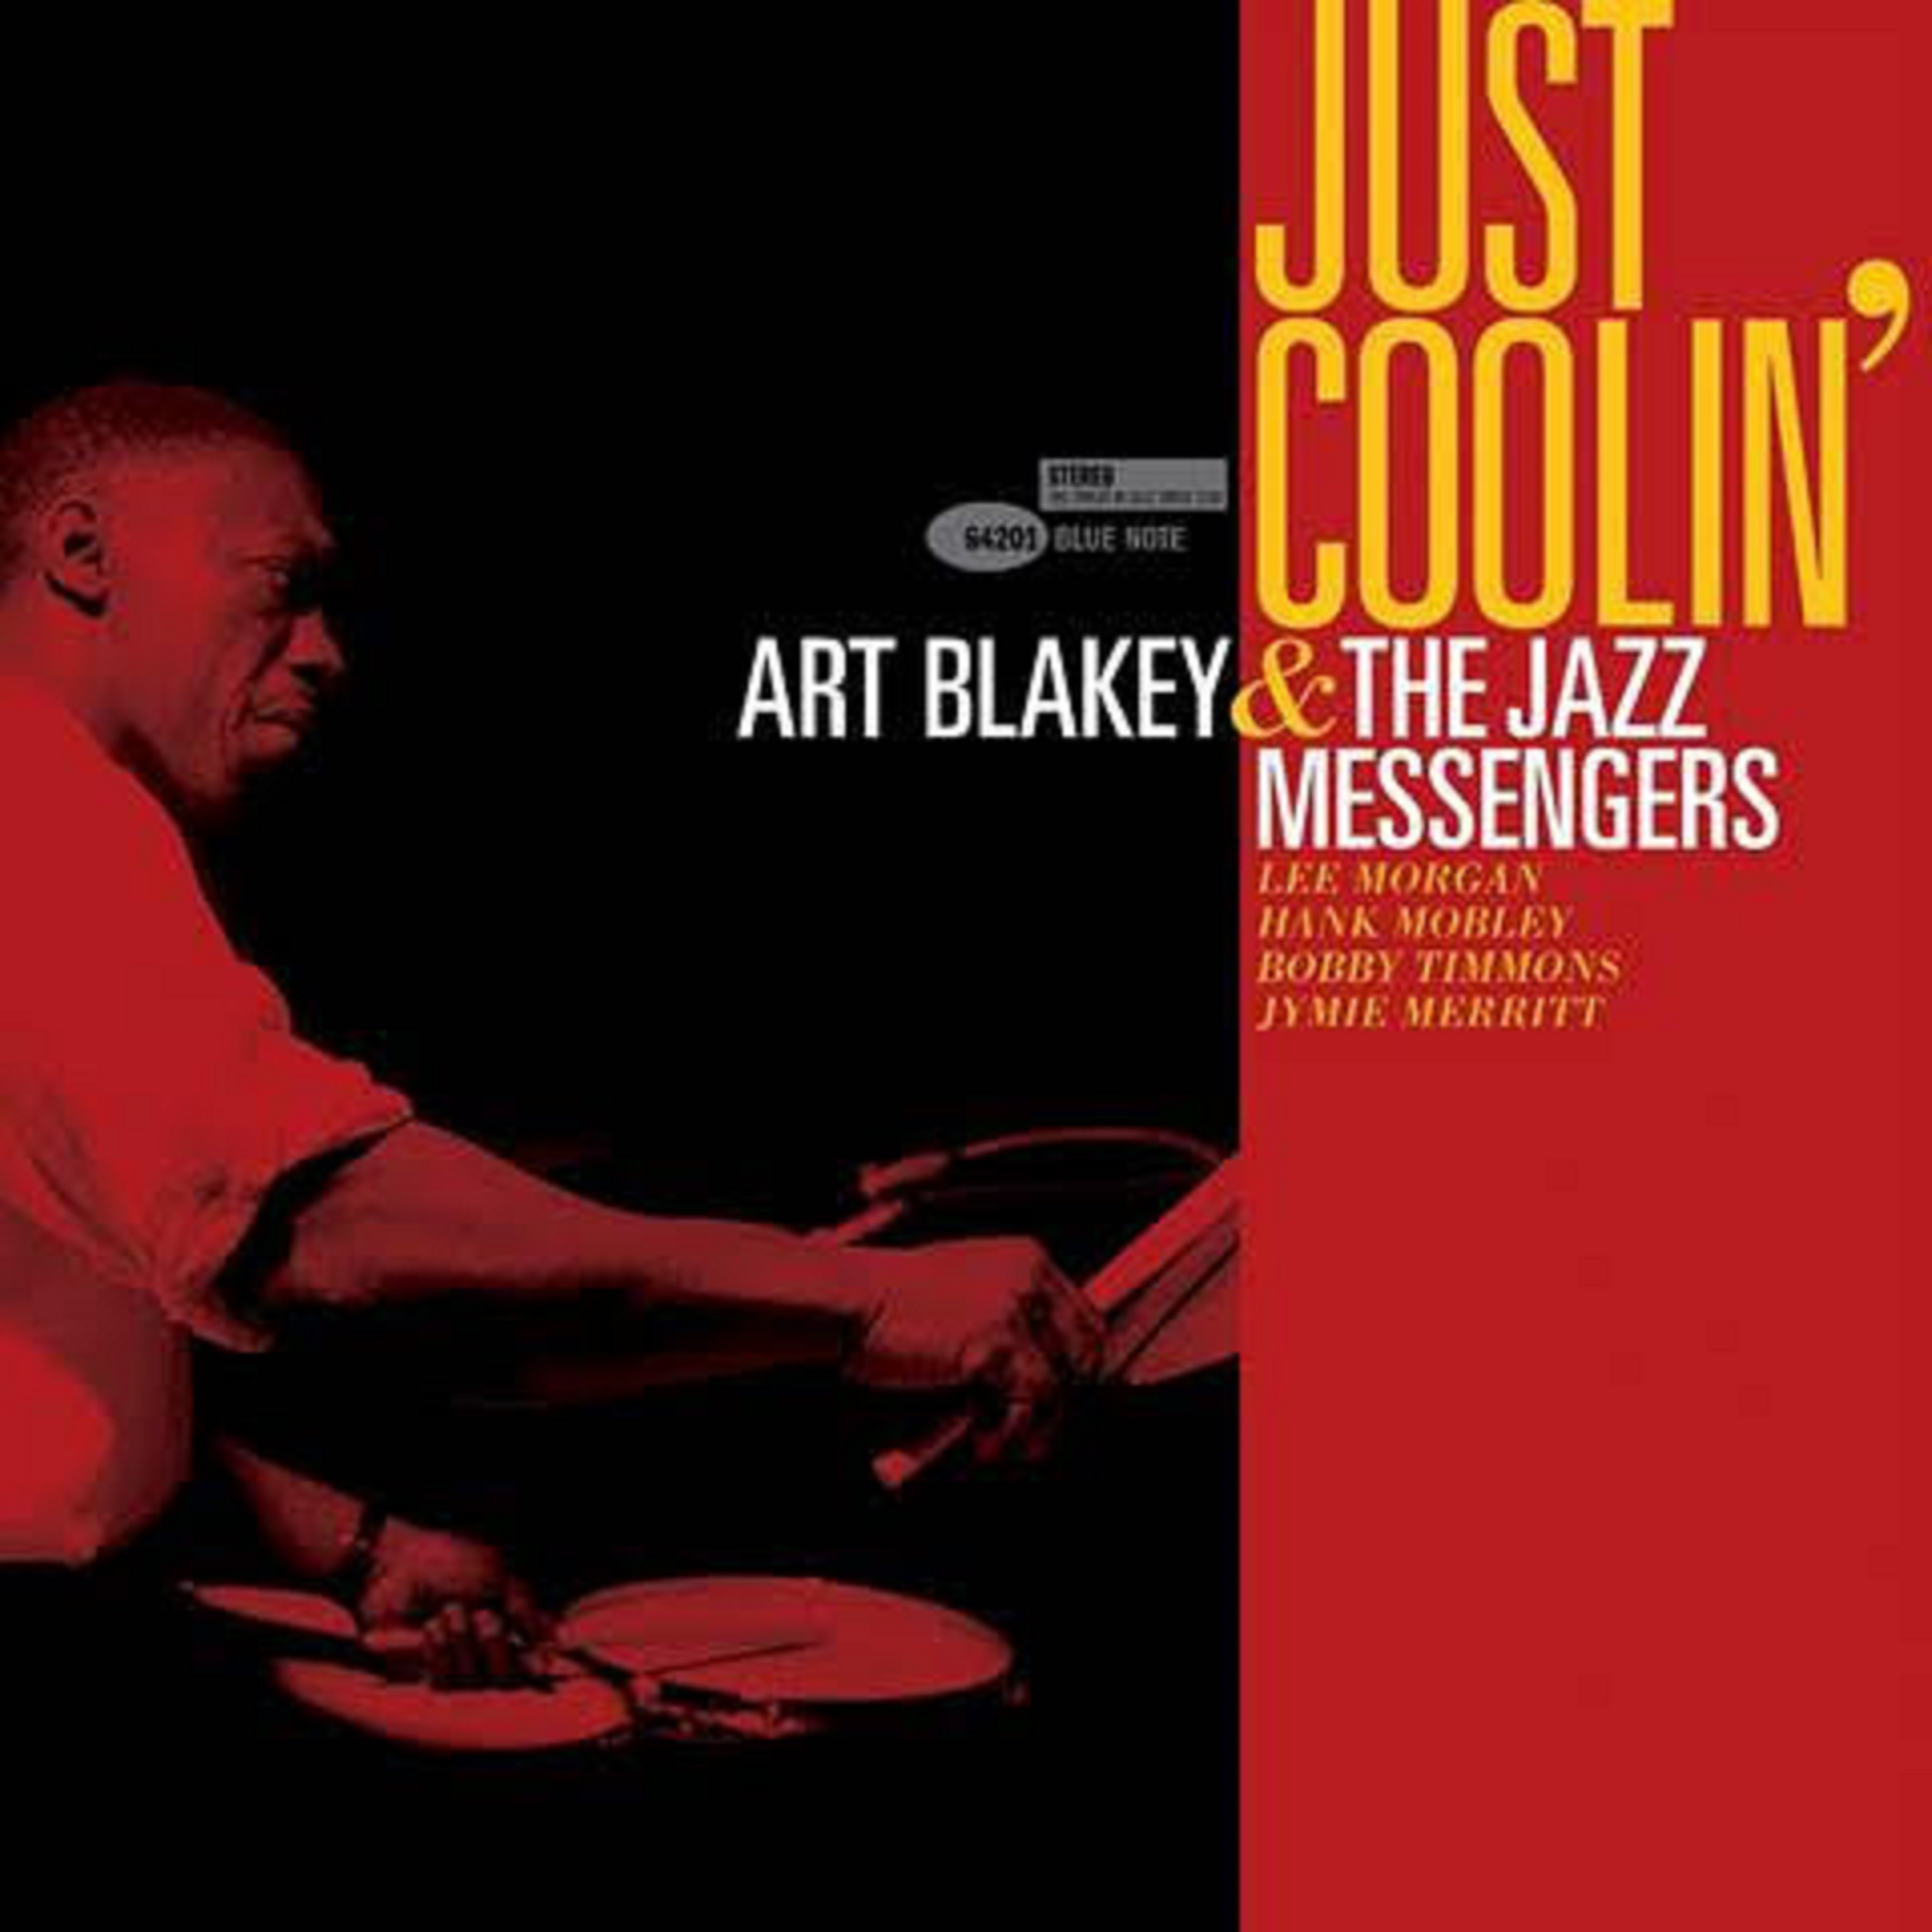 Art Blakey & the Jazz Messengers' Just Coolin' - NEVER-BEFORE-RELEASED